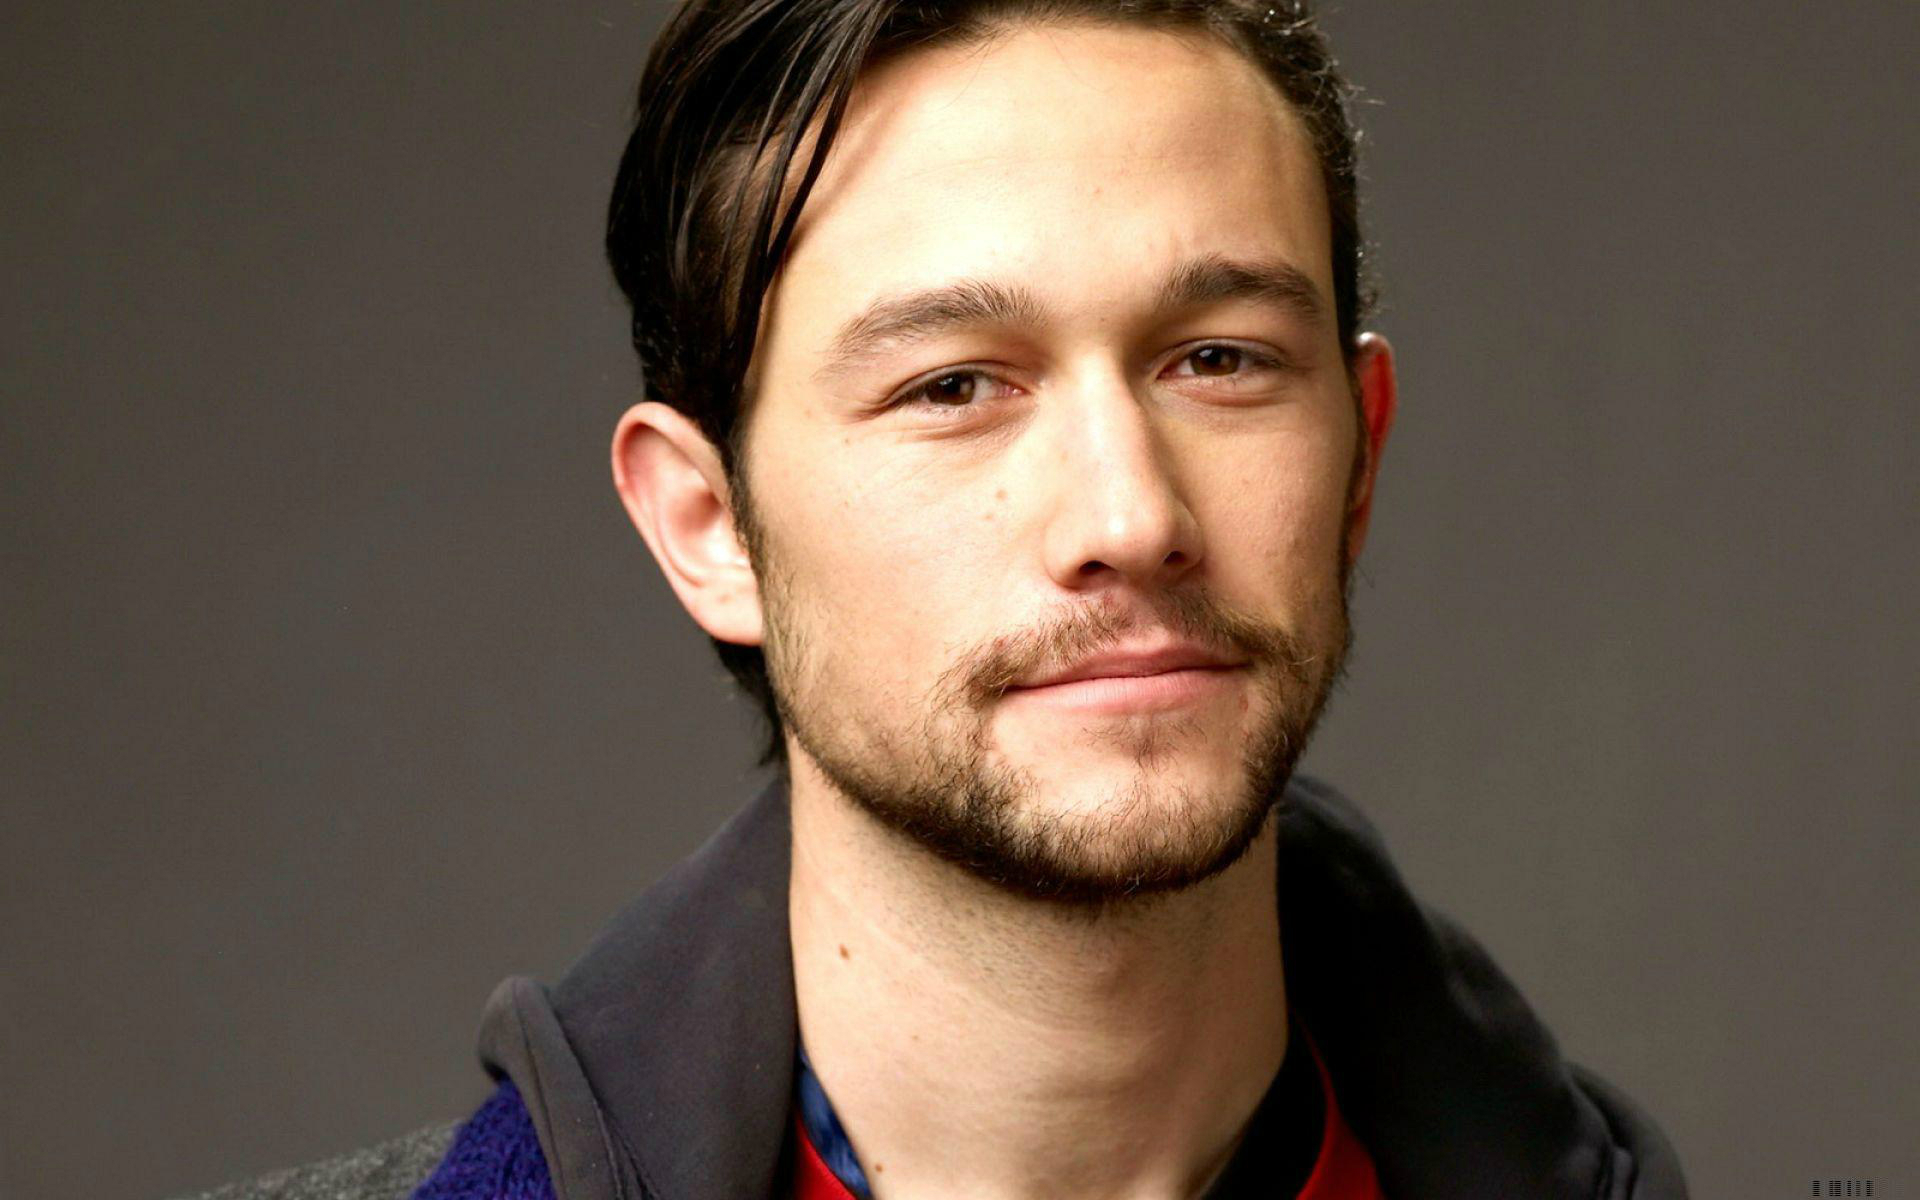 #Mañana #17F 1981 nace Joseph Gordon-Levitt, actor estadounidense (Inception, Looper, 50/50) http://youtu.be/gTsXd4IinW0 ...